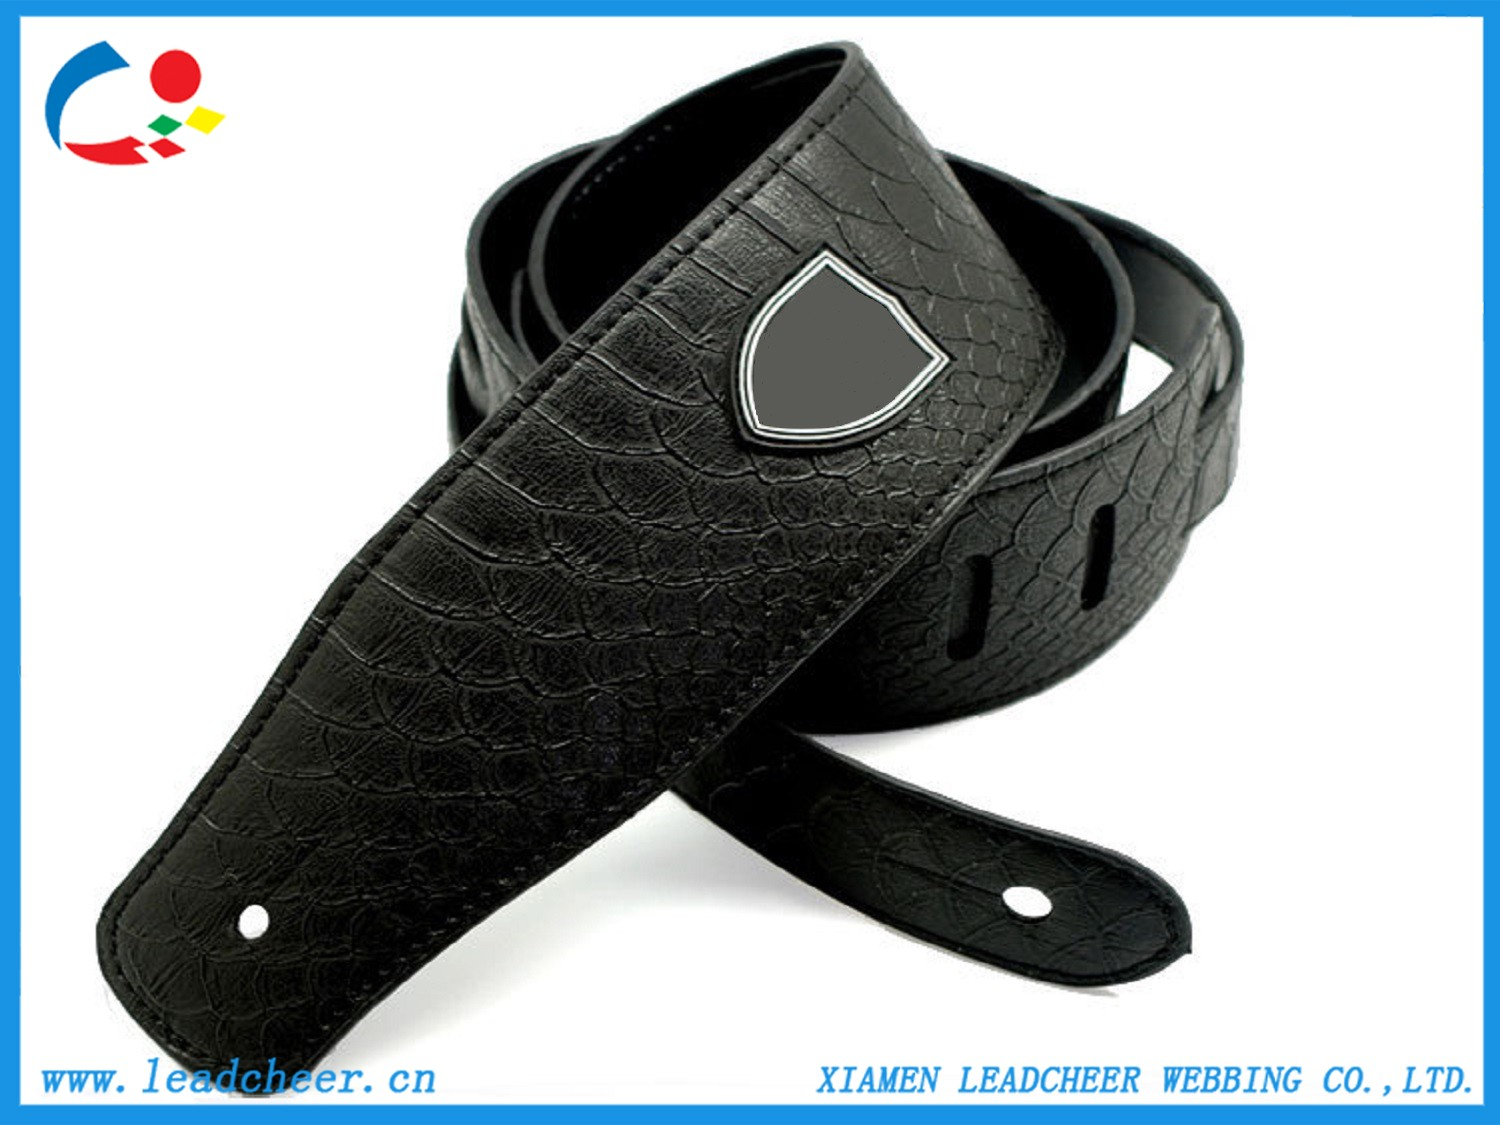 High quality High-End Superior Quality Luxurious PU Leather Guitar Belt Quotes,China High-End Superior Quality Luxurious PU Leather Guitar Belt Factory,High-End Superior Quality Luxurious PU Leather Guitar Belt Purchasing